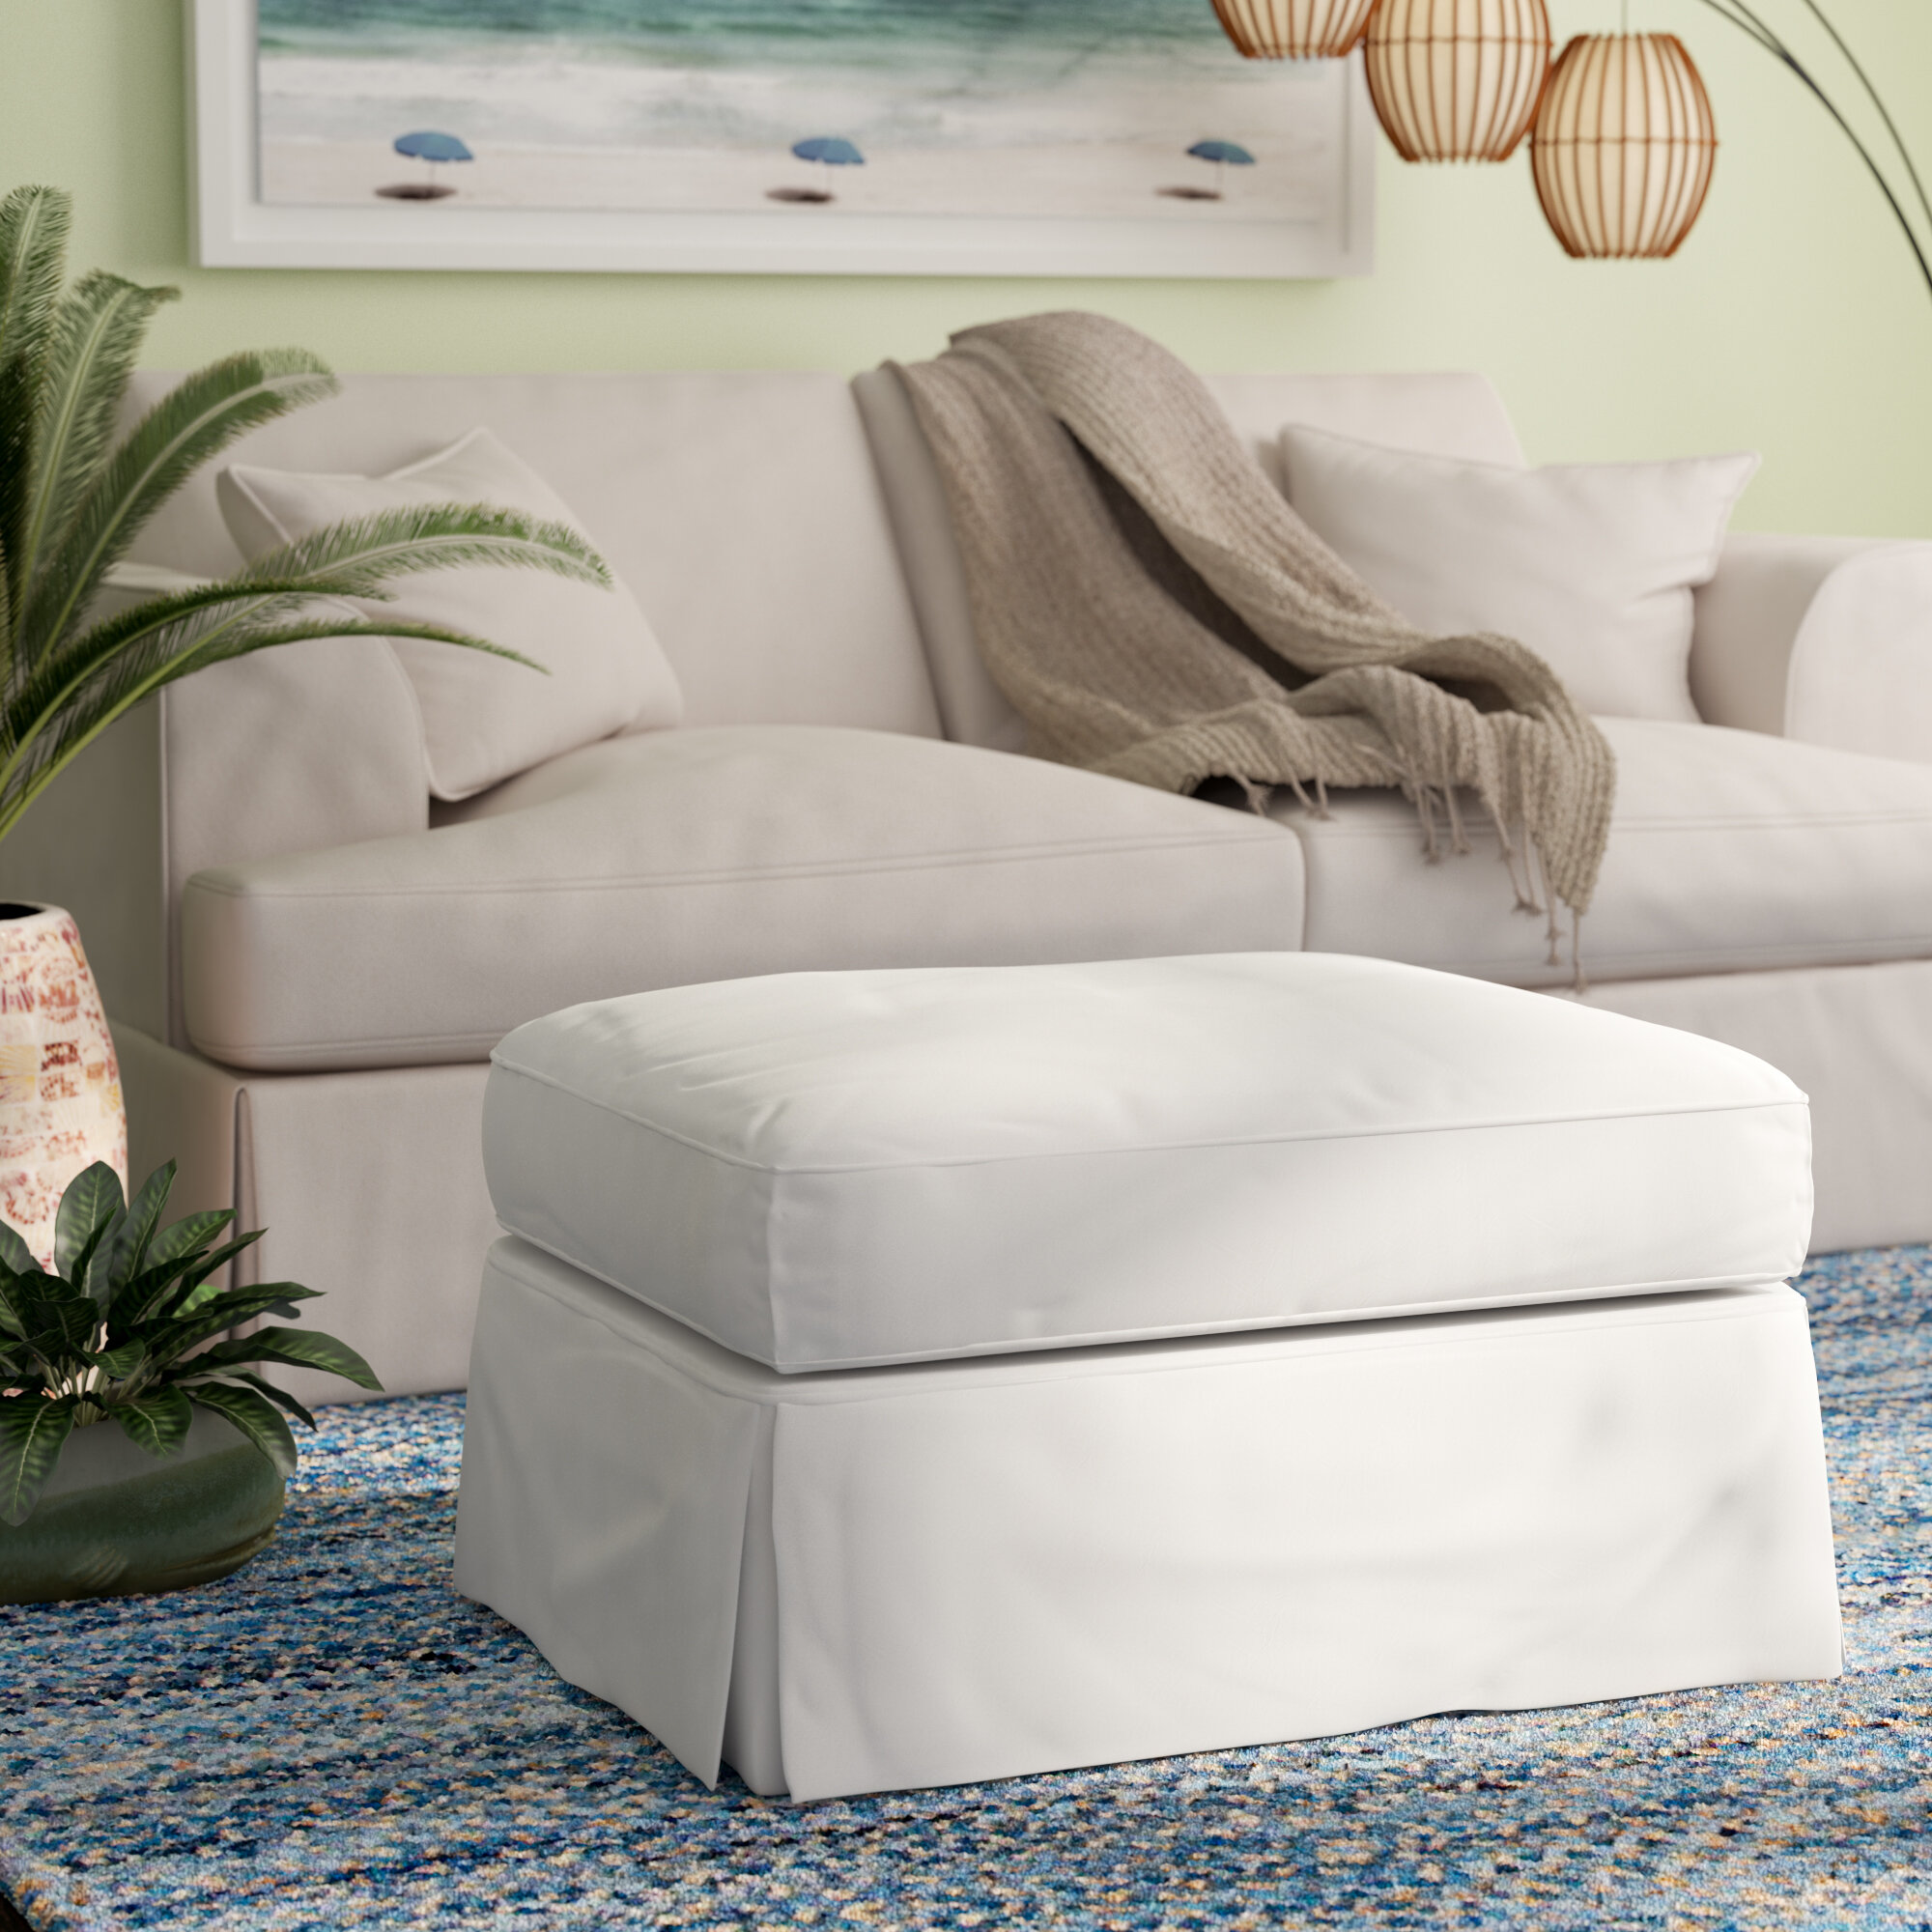 garden barninc slipcovers stretch ottomans slipcover ottoman for large